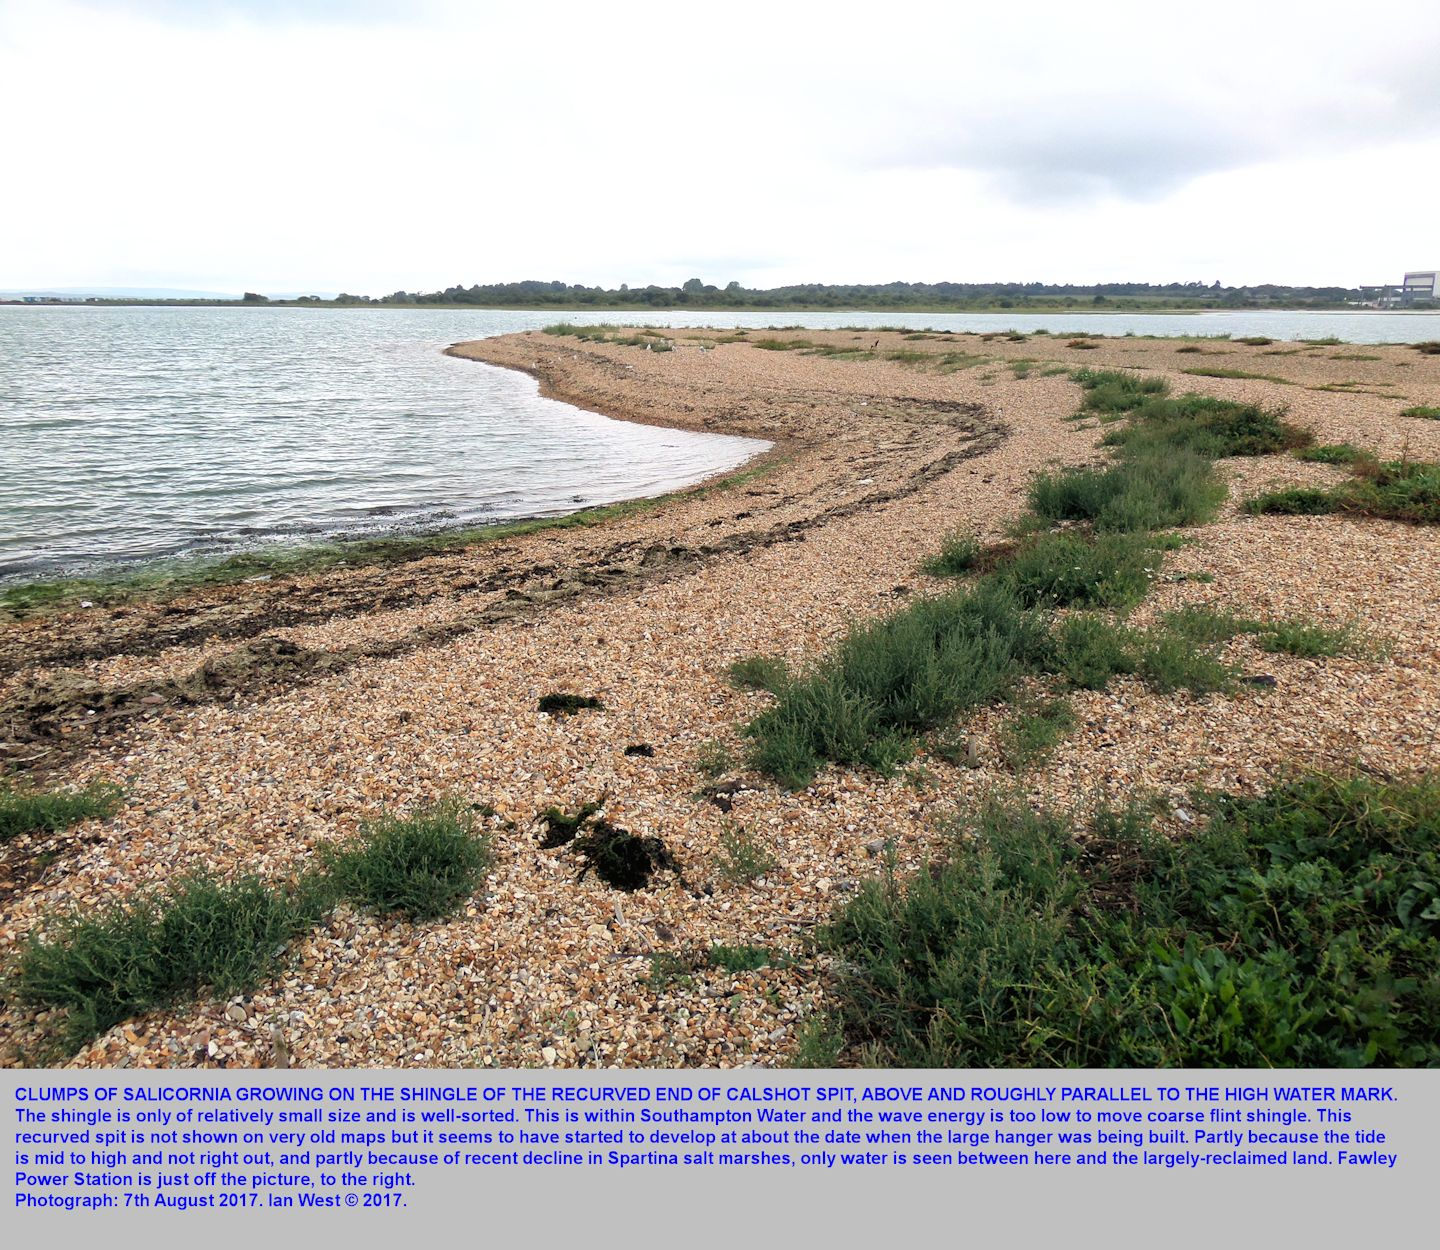 The relatively new, recurved, northwest end of Calshot Spit, with  medium shingle and some Salicornia plants, as seen in 2017